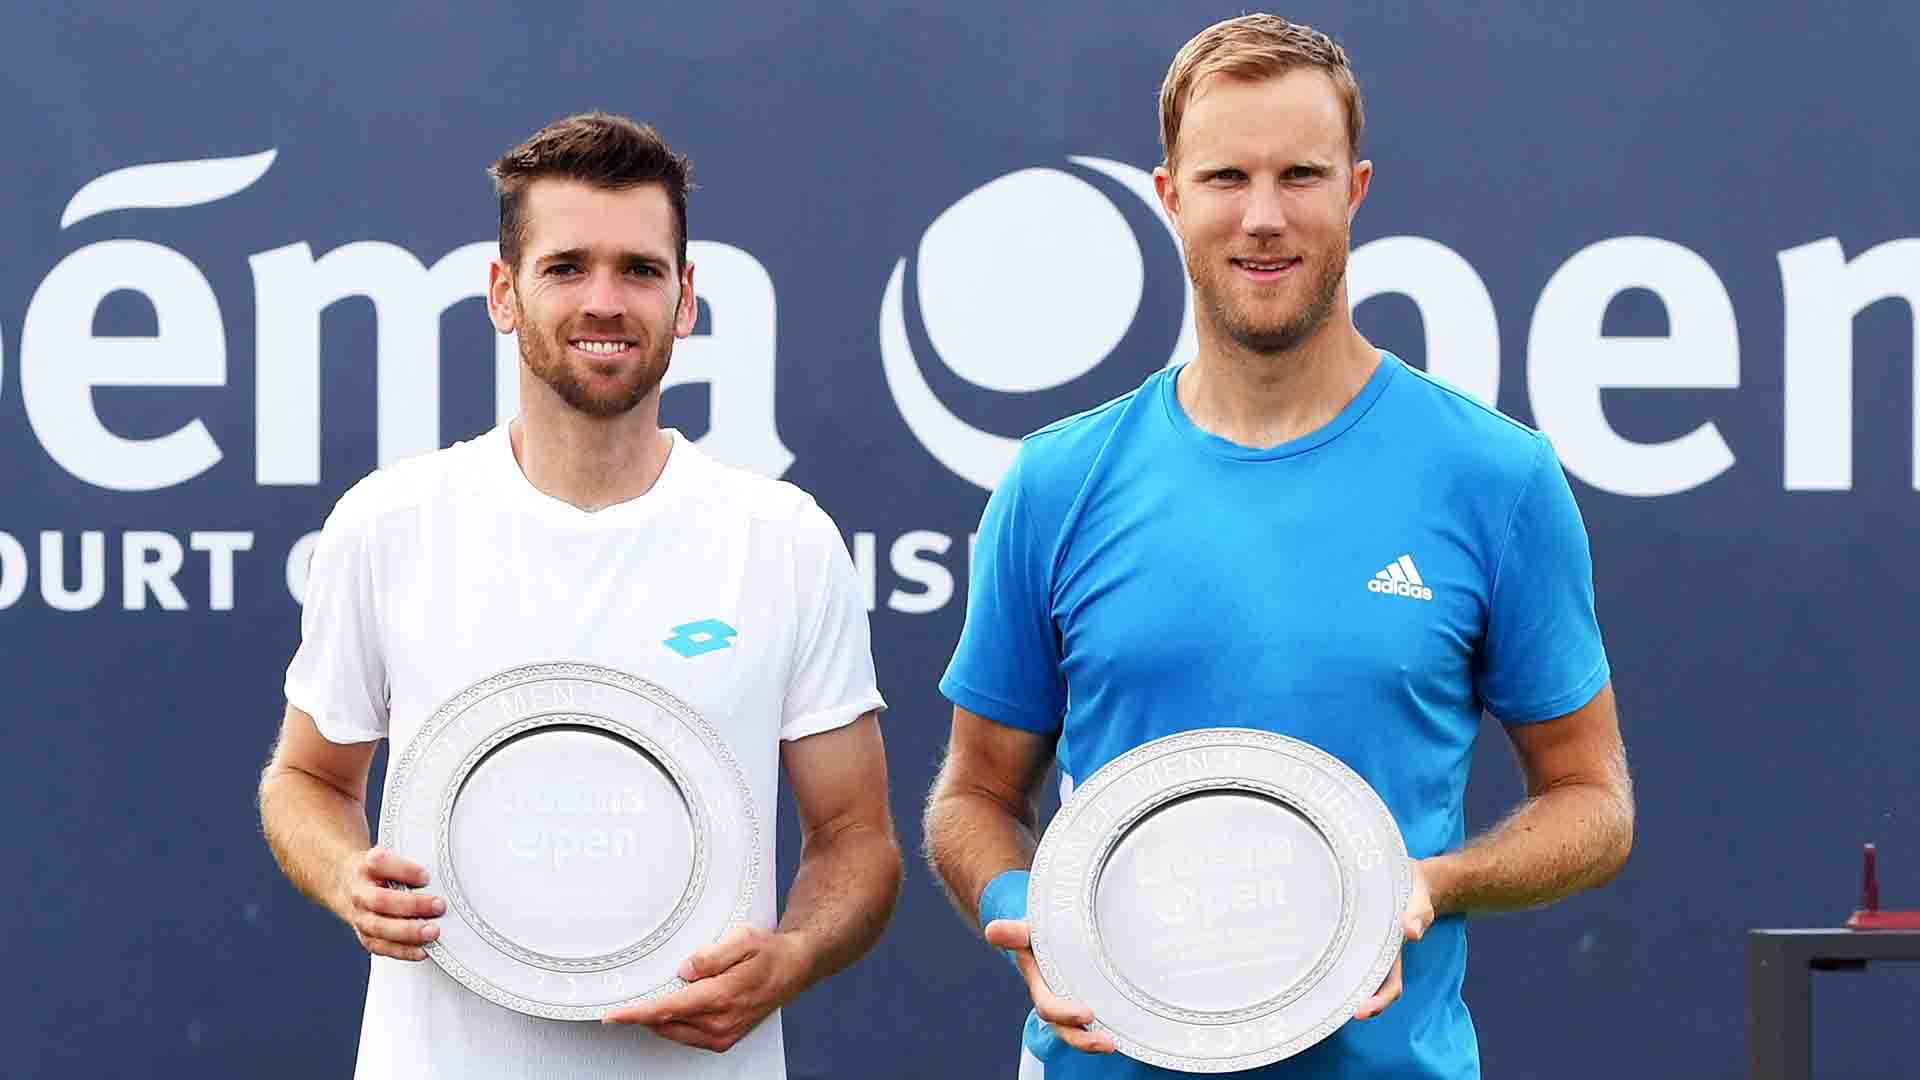 Austin Krajicek and Dominic Inglot defeat Marcus Daniell and Wesley Koolhof to capture the Libema Open title.